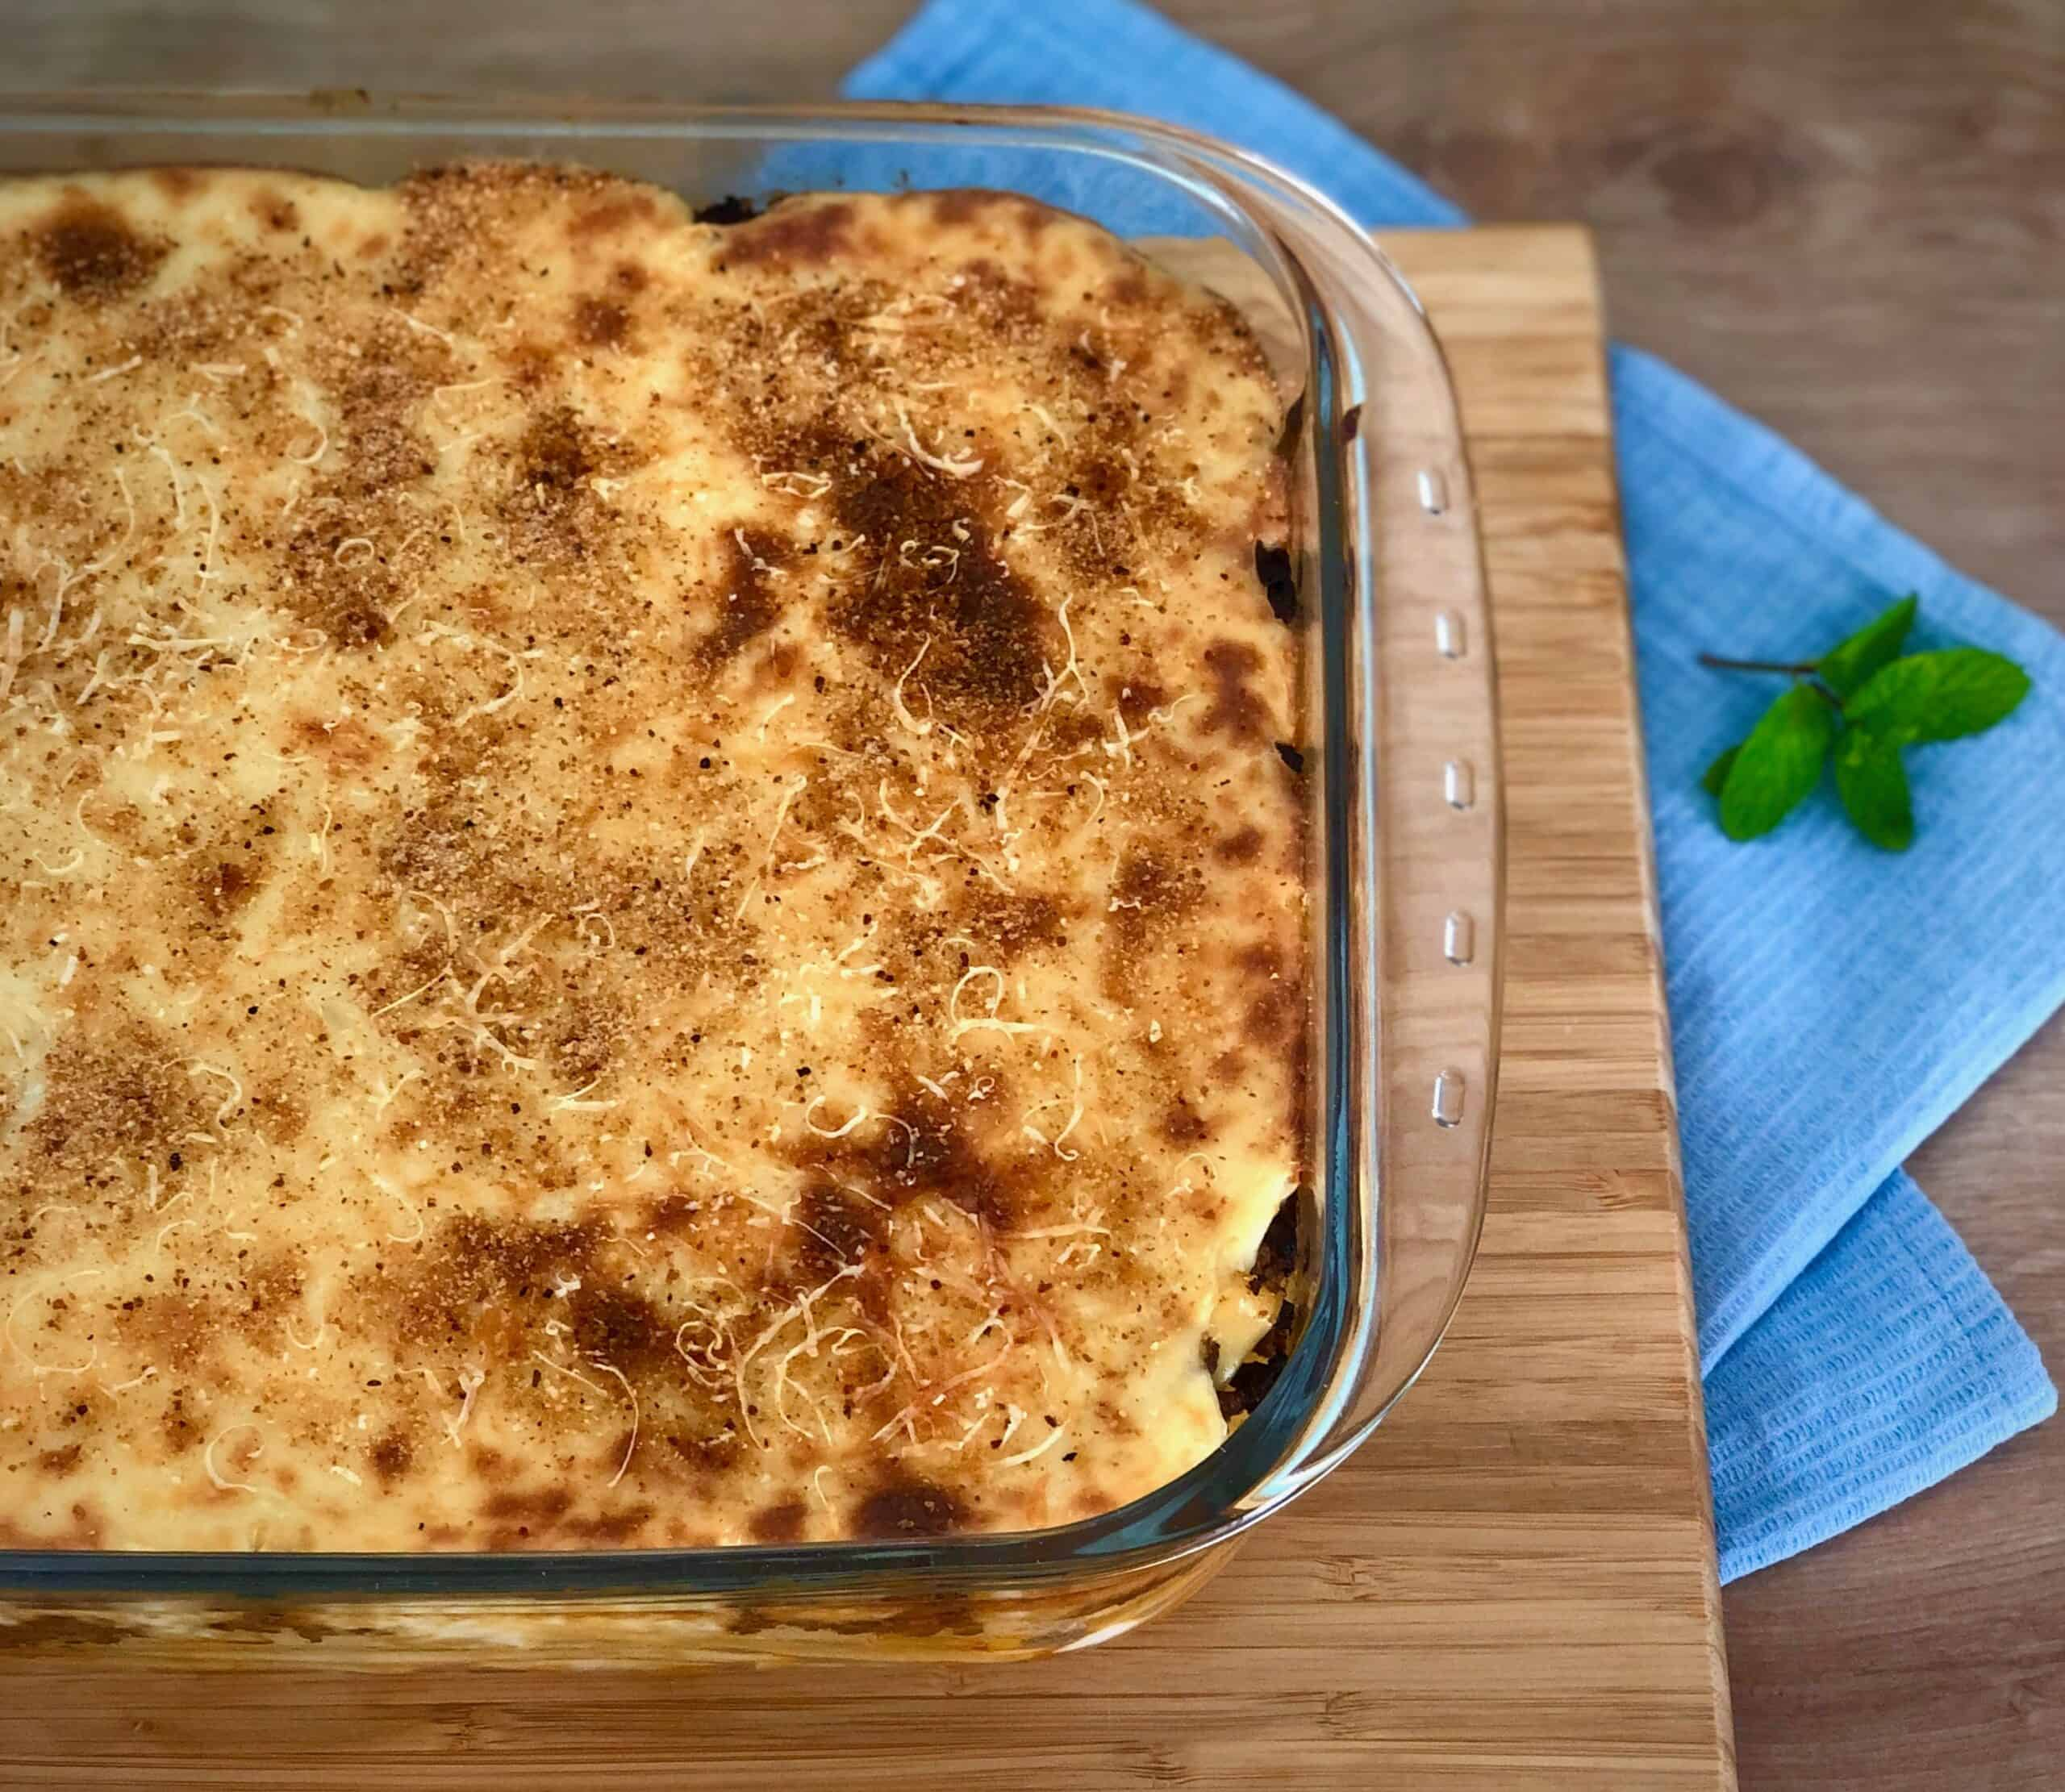 Pastitsio recipe - Greek Lasagna with Béchamel sauce in a pan